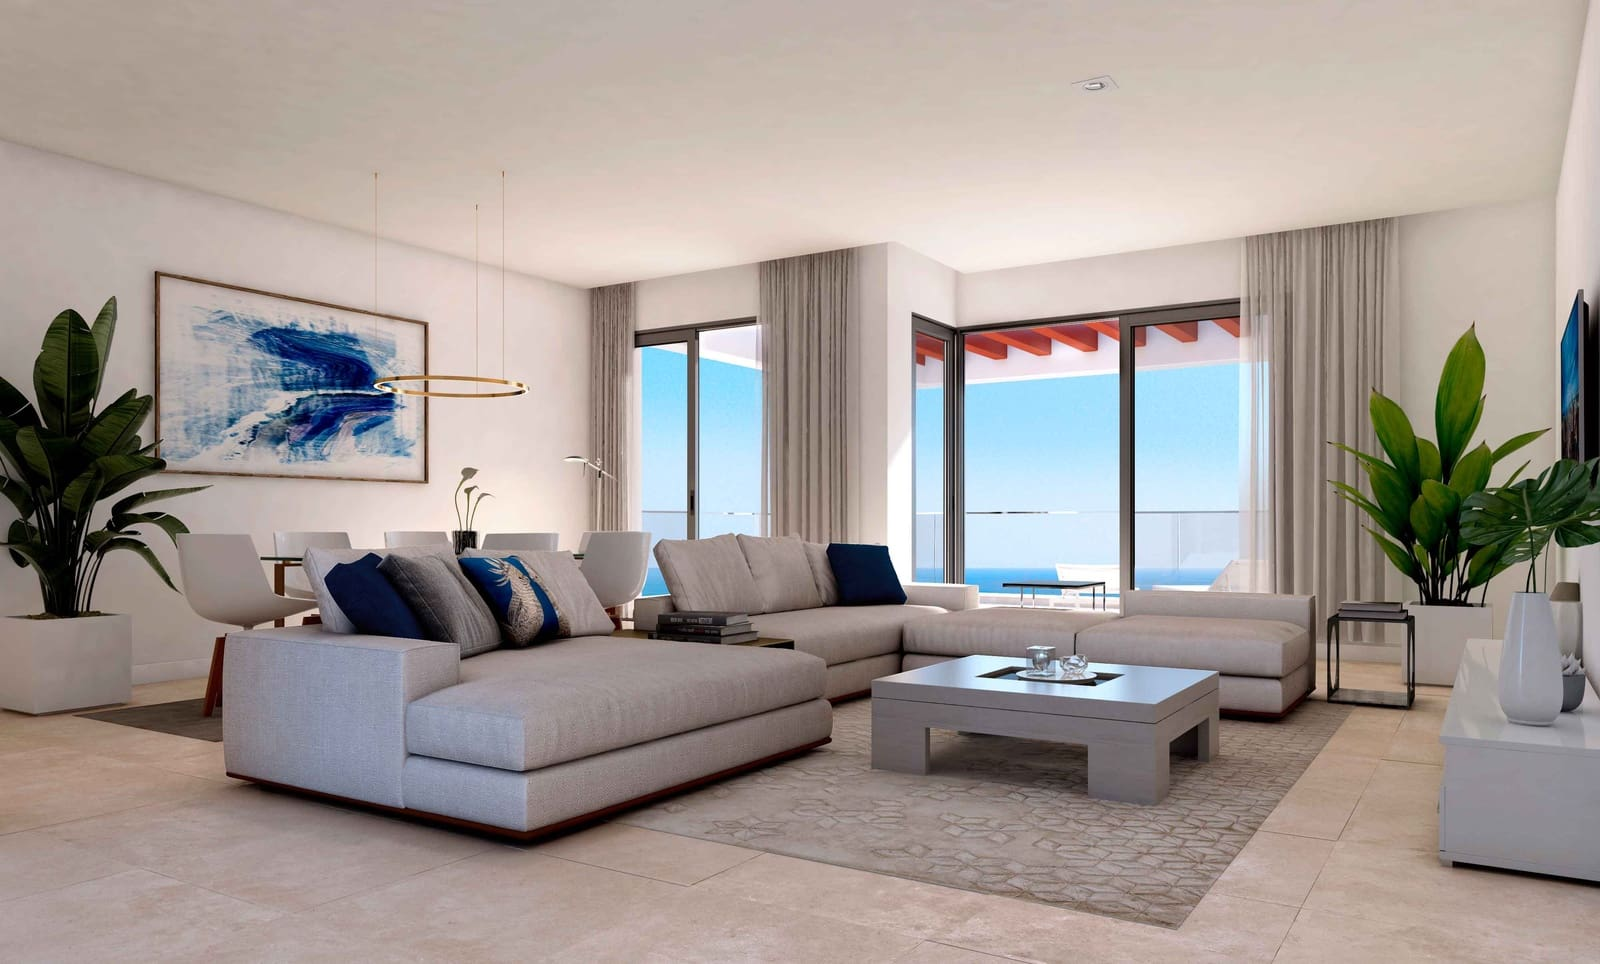 4 bedroom Apartment for sale in Fuengirola with pool garage - € 545,000 (Ref: 4990968)